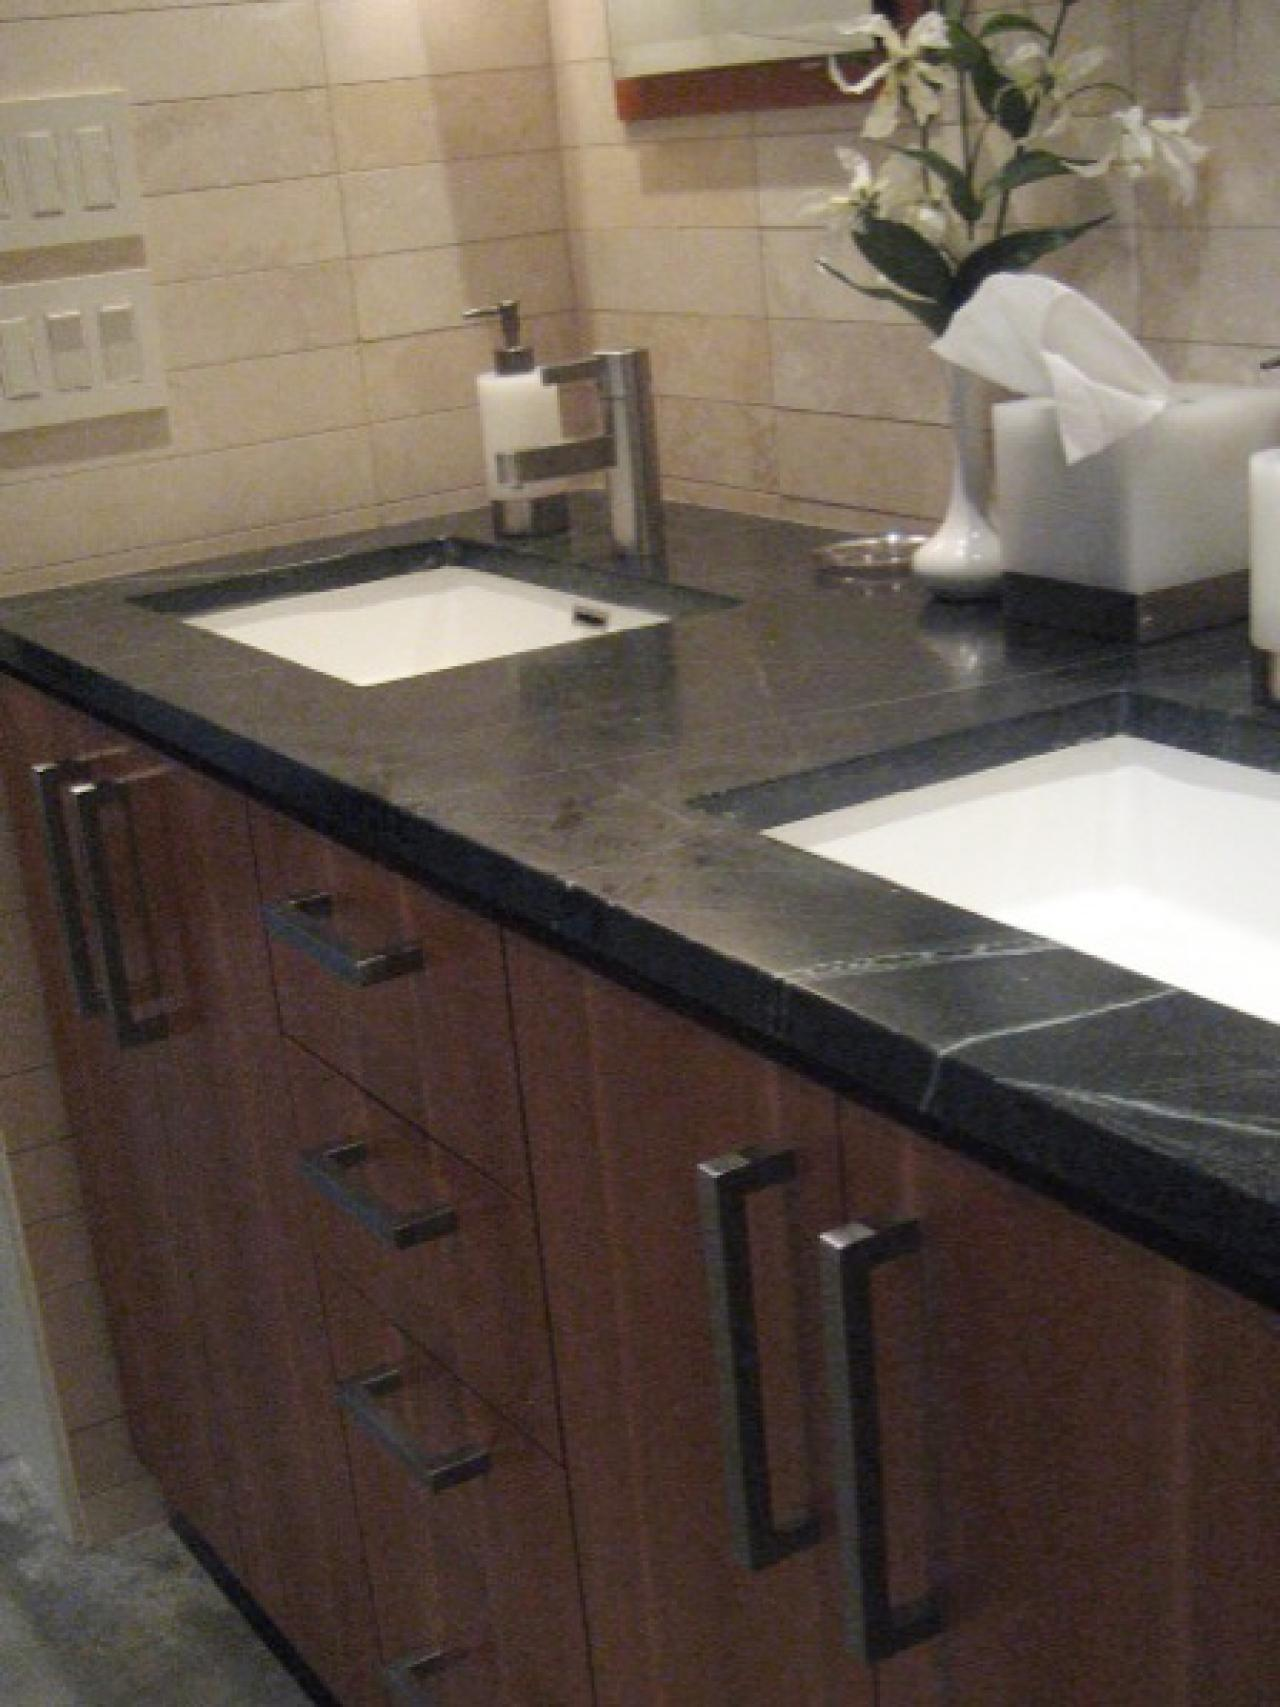 Choosing bathroom countertops hgtv for 3 4 inch granite countertops